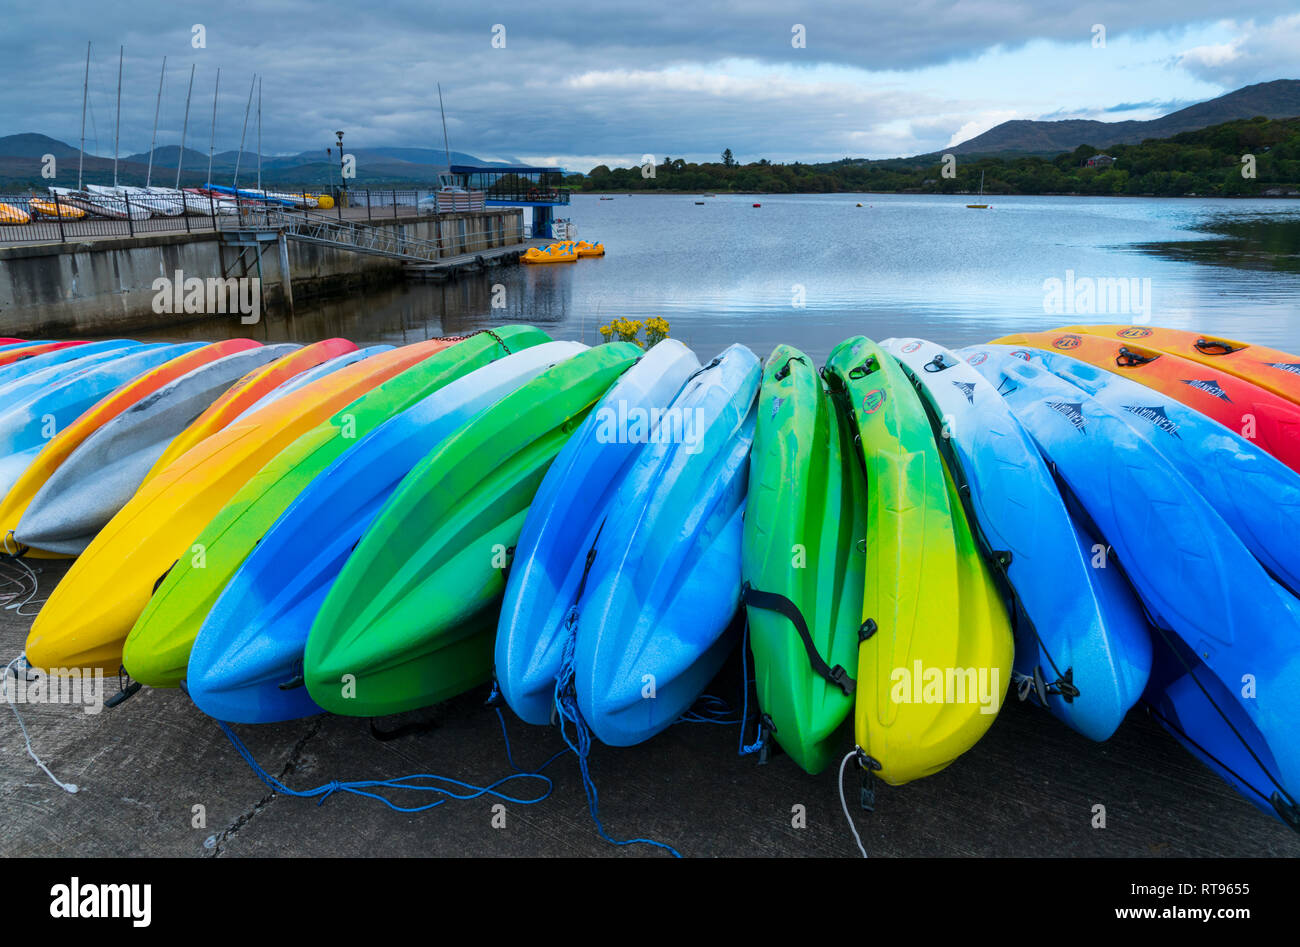 Kayaking, Kenmare Bay, Ring of Kerry Trail, County Kerry, Ireland, Europe - Stock Image